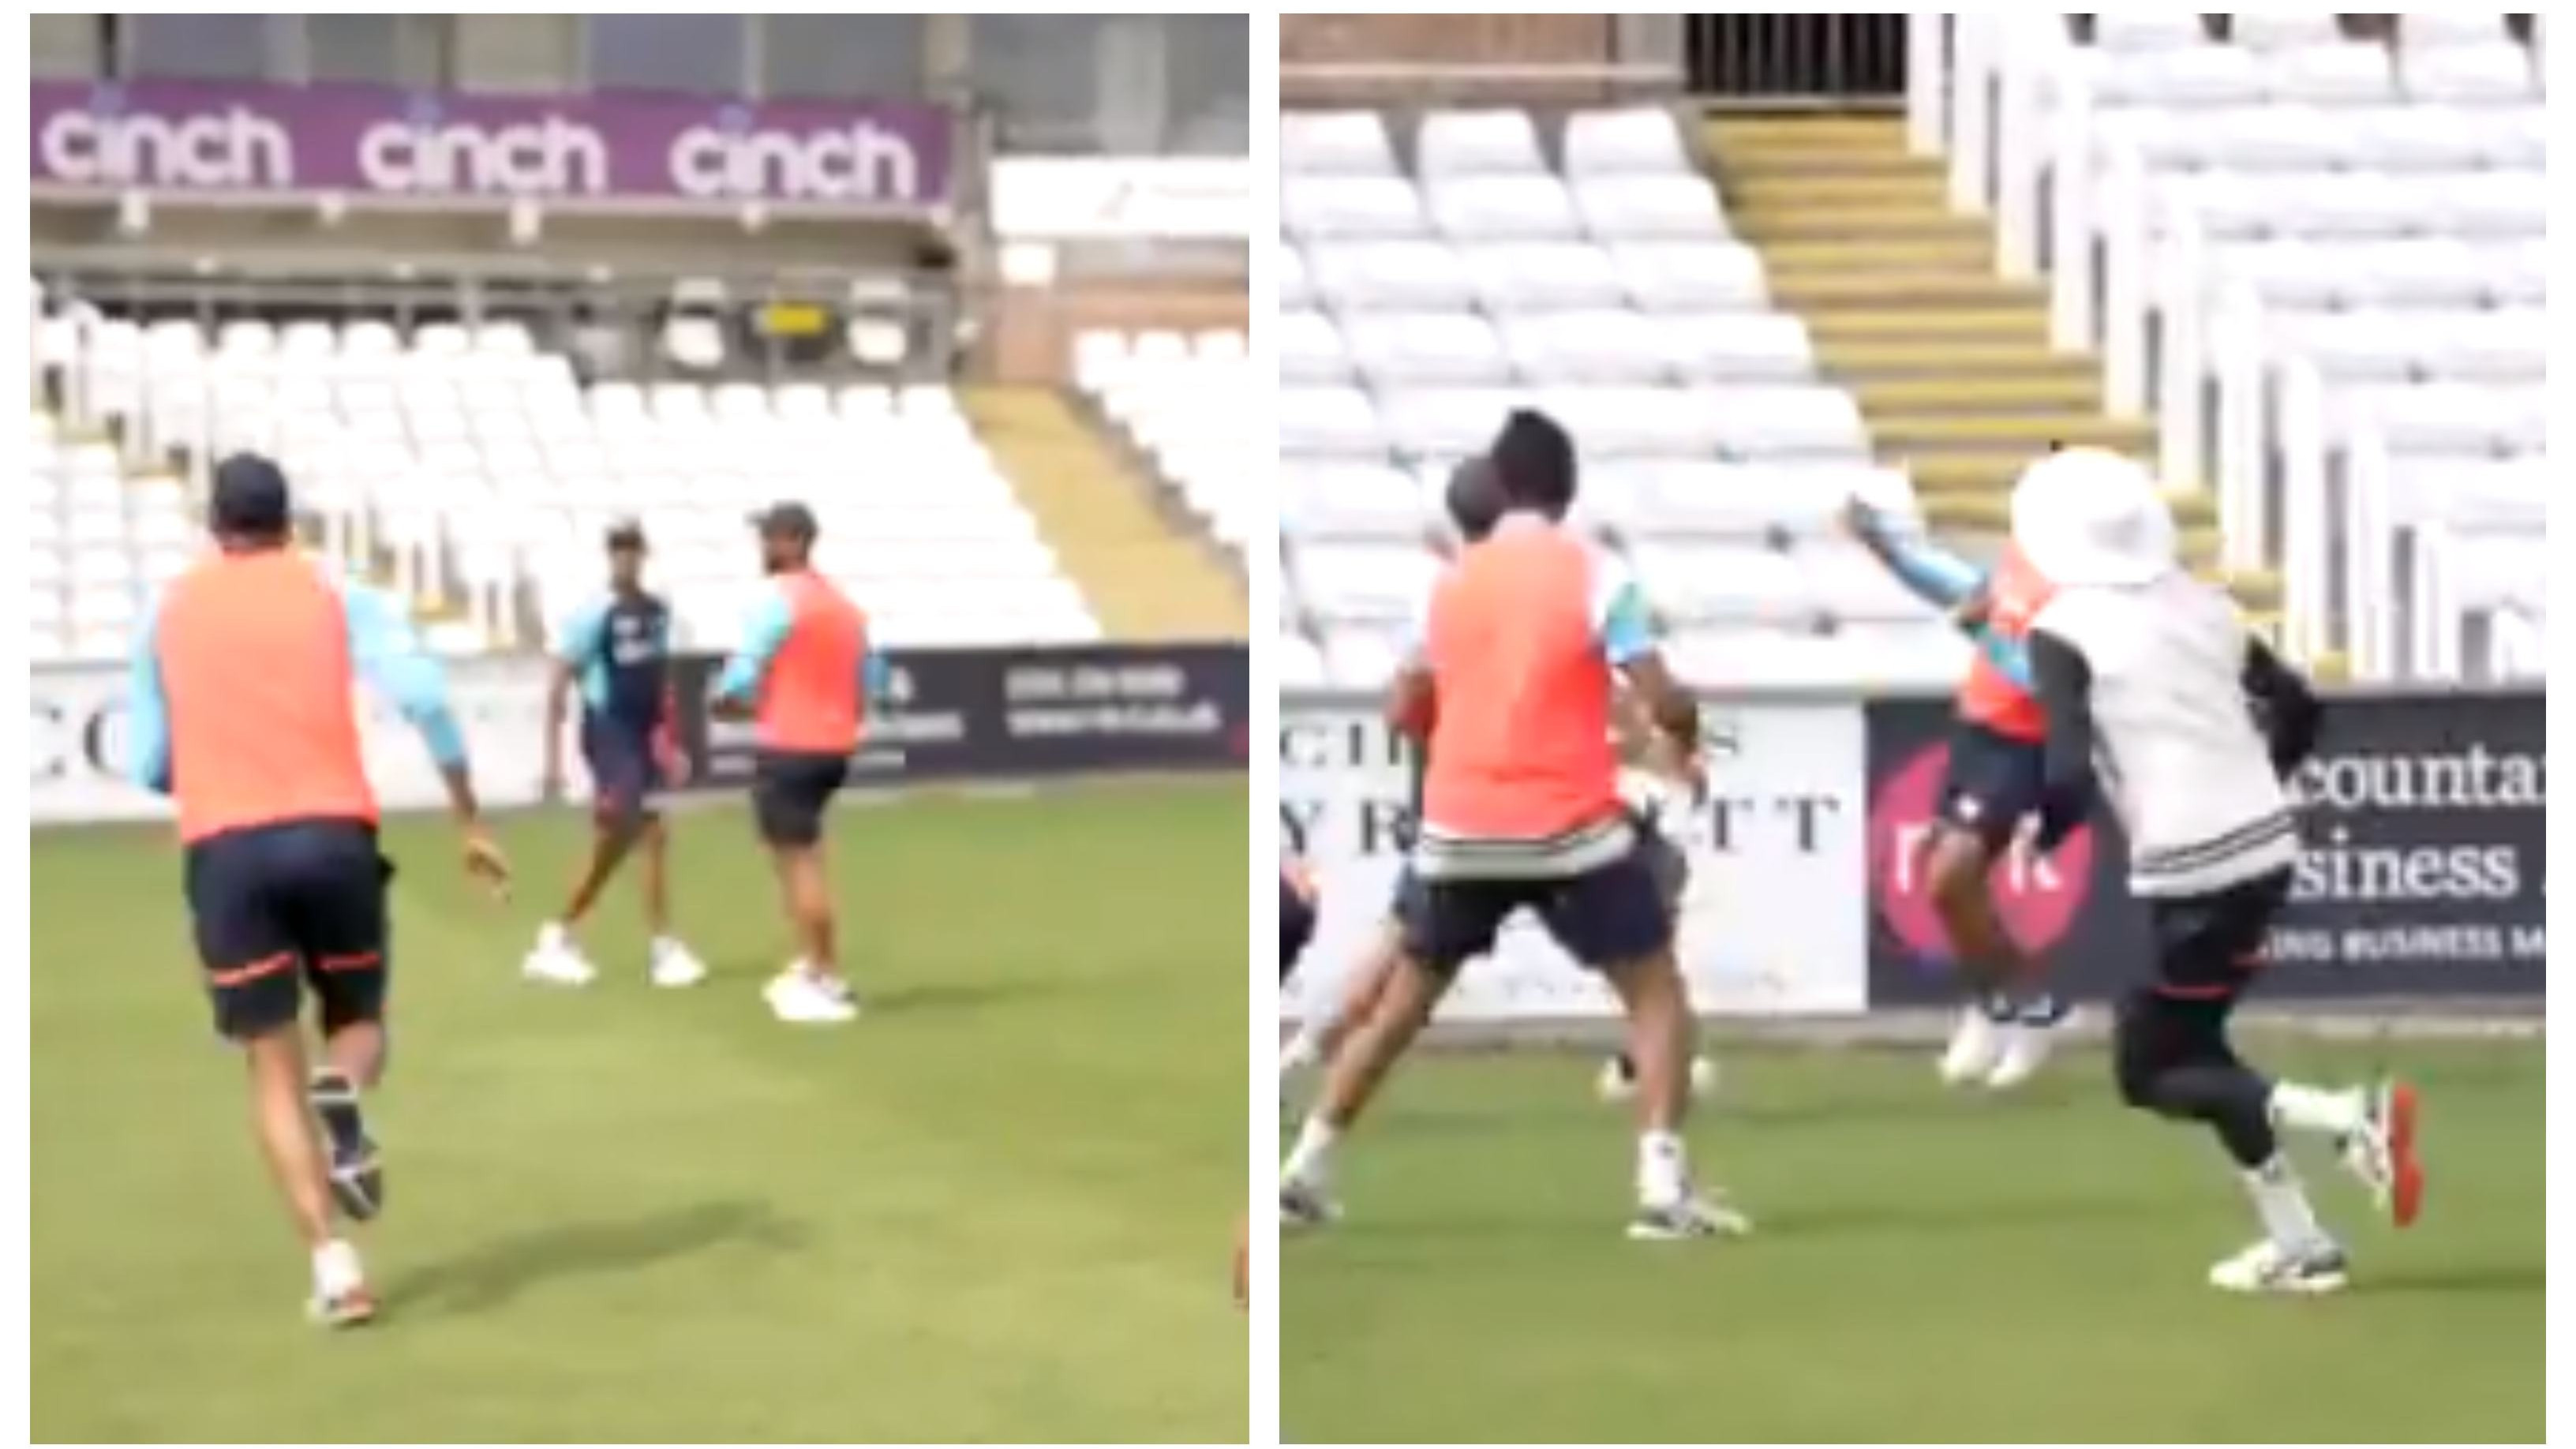 ENG v IND 2021: WATCH – Team India members hone their catching skills using an innovative method